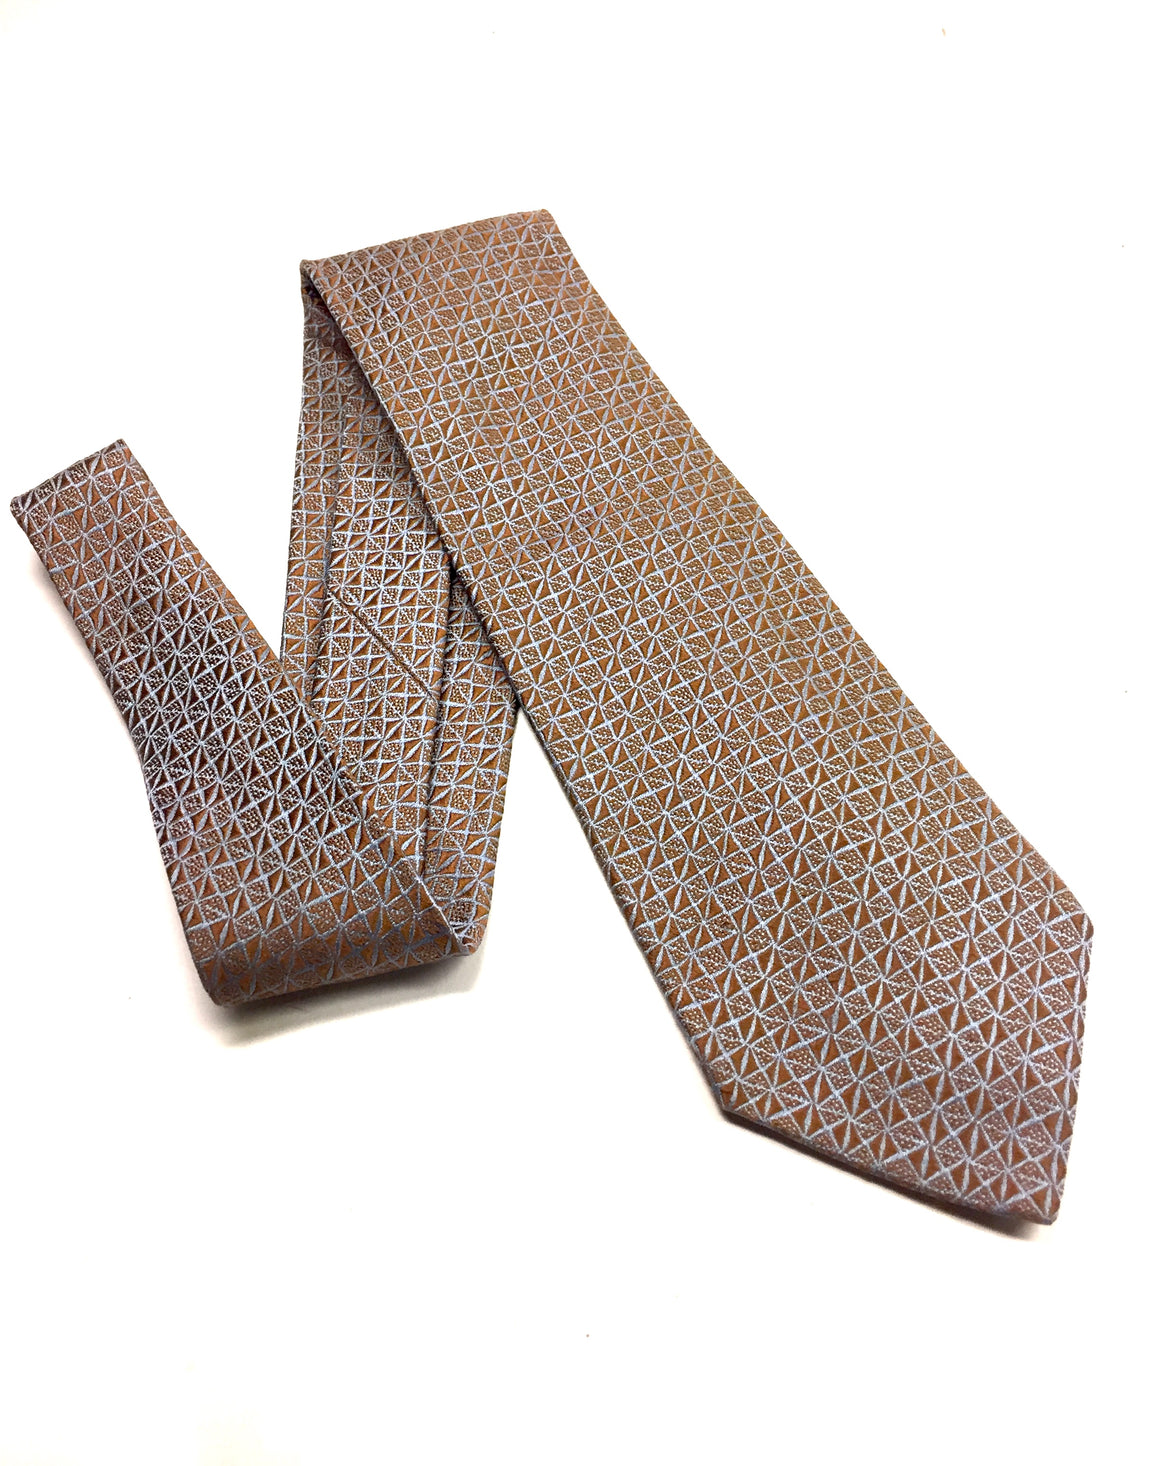 CHARVET Wedgewood-Blue/Honey-Brown Diamond Pattern Textured Silk Men's Neck Tie